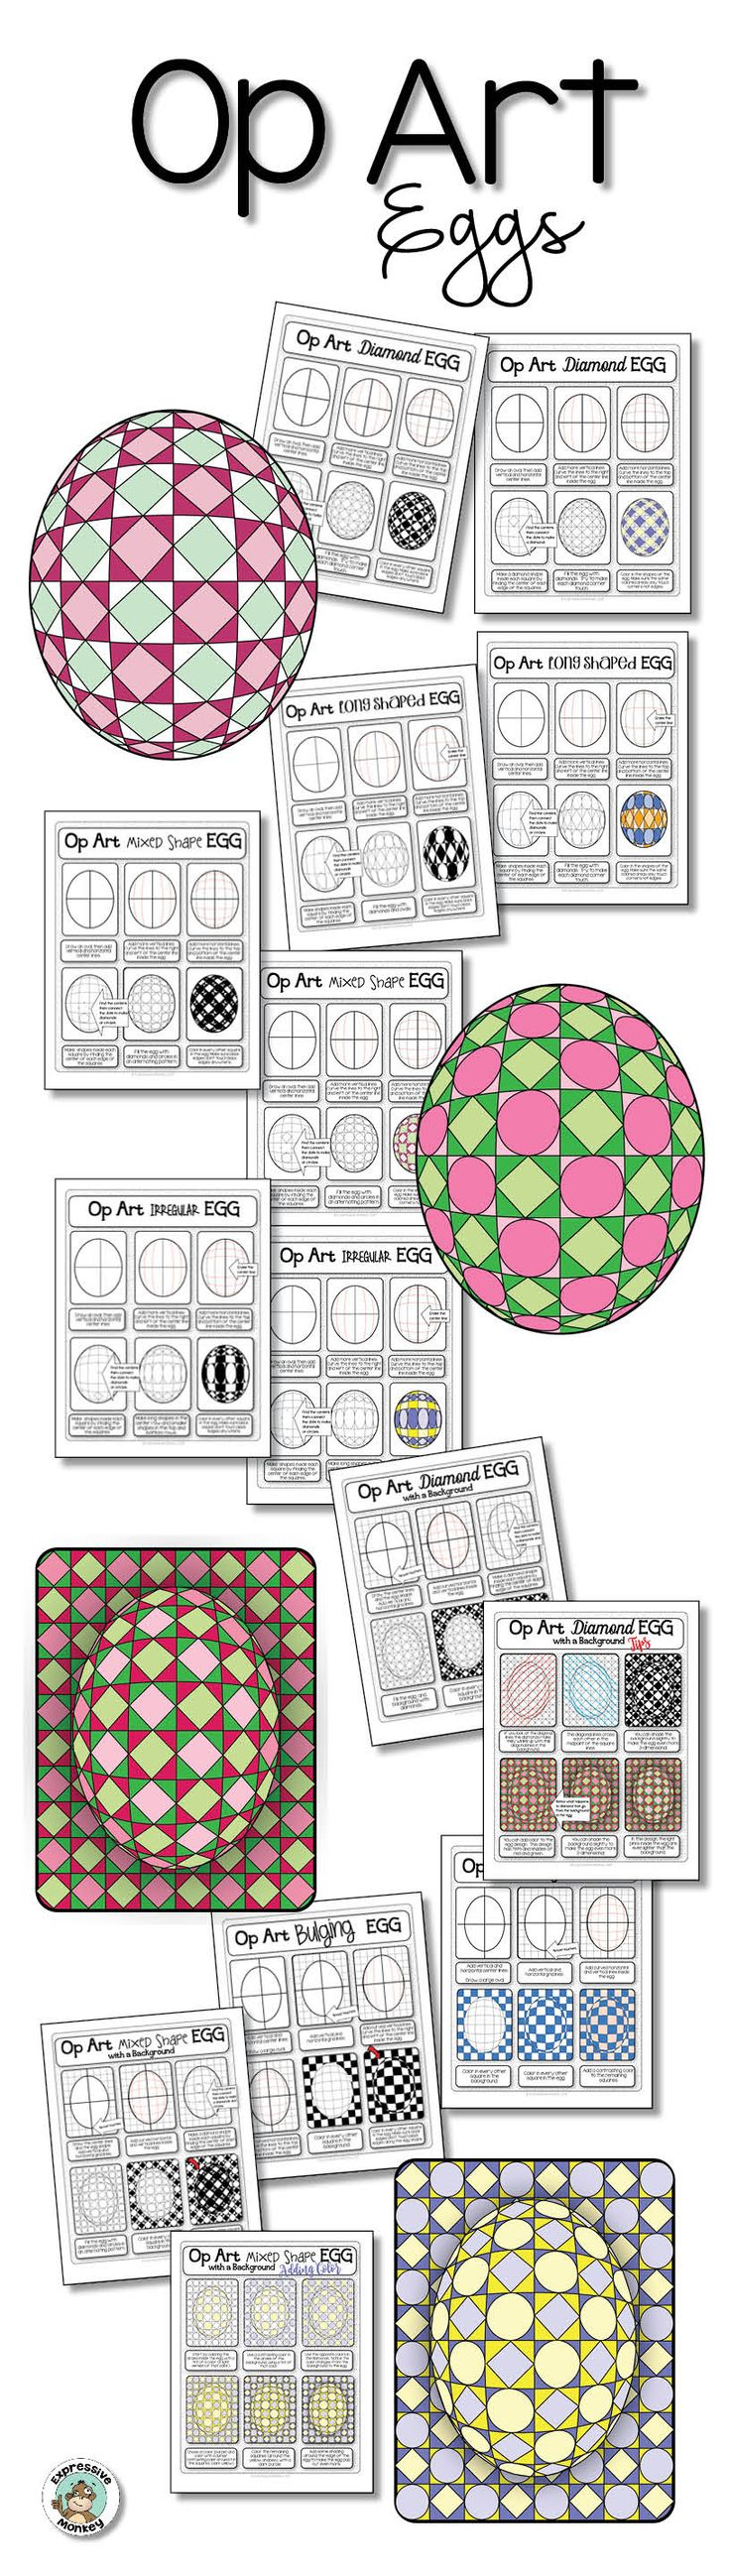 Don't let the pretty eggs fool you! This lesson is rich in art concepts and cross-curricular connections!